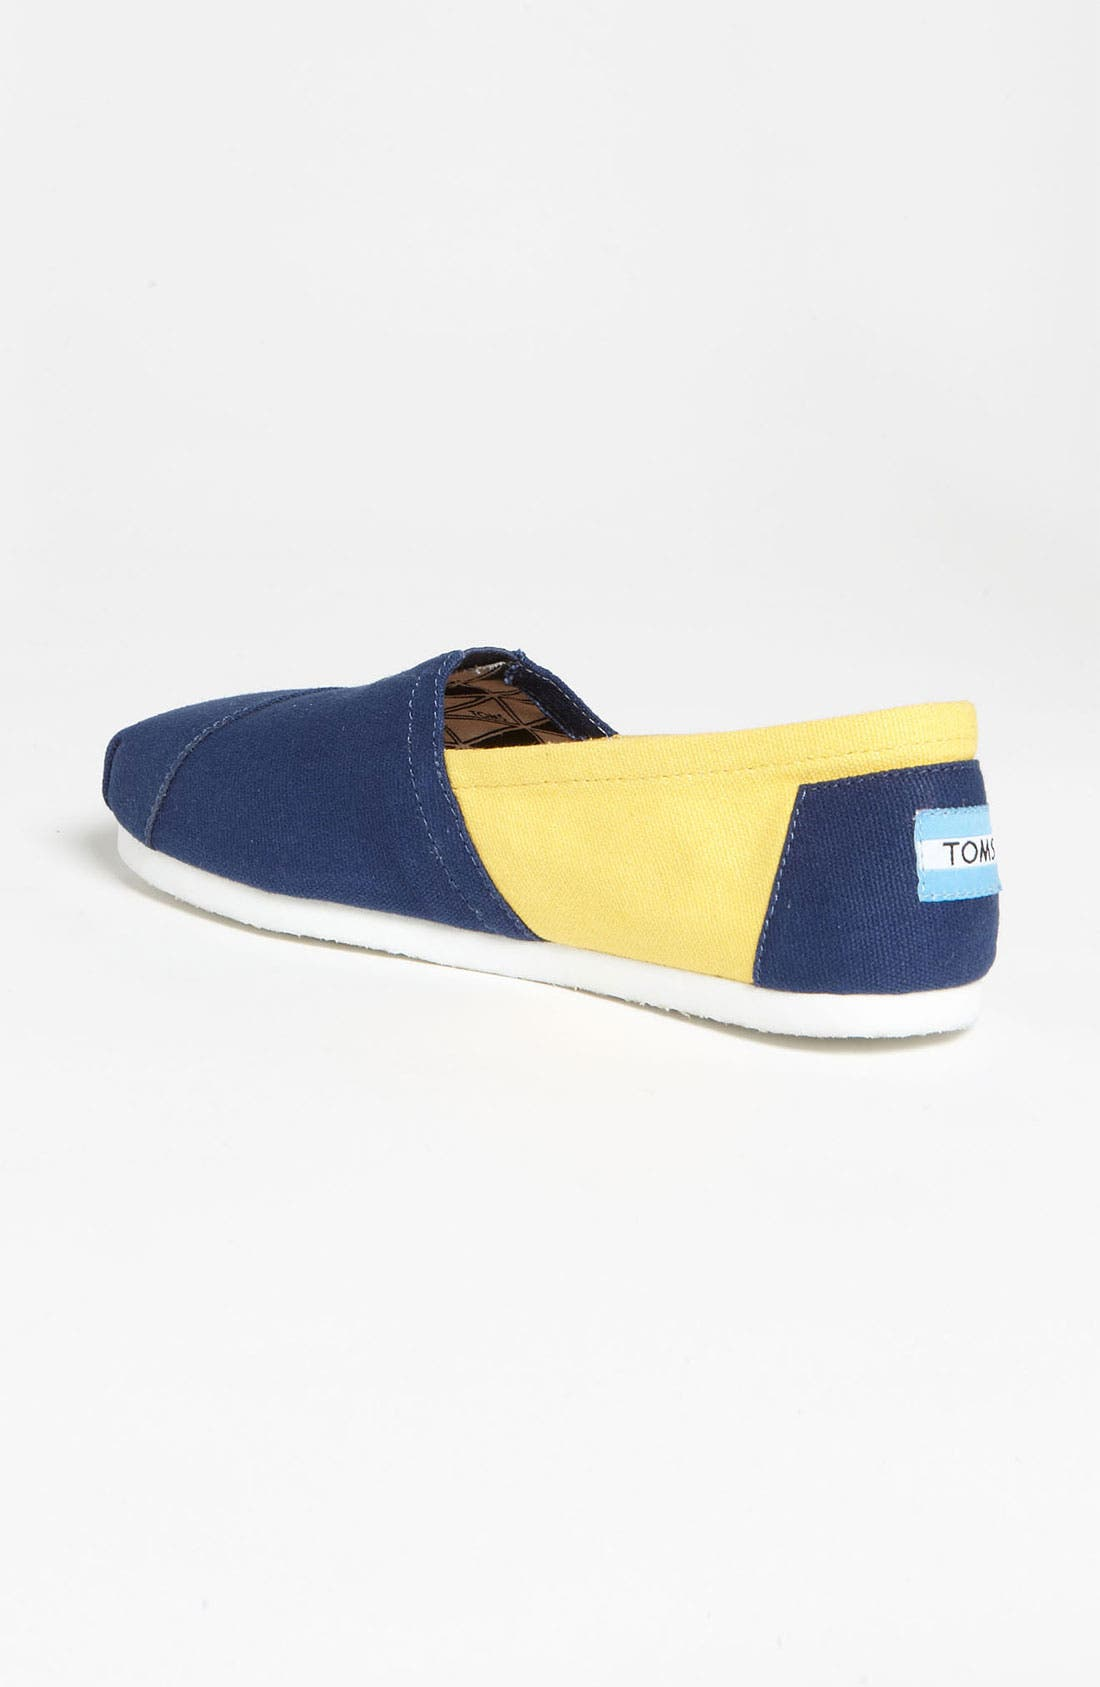 Alternate Image 2  - TOMS 'Campus Classics - University of Michigan' Slip-On (Women)